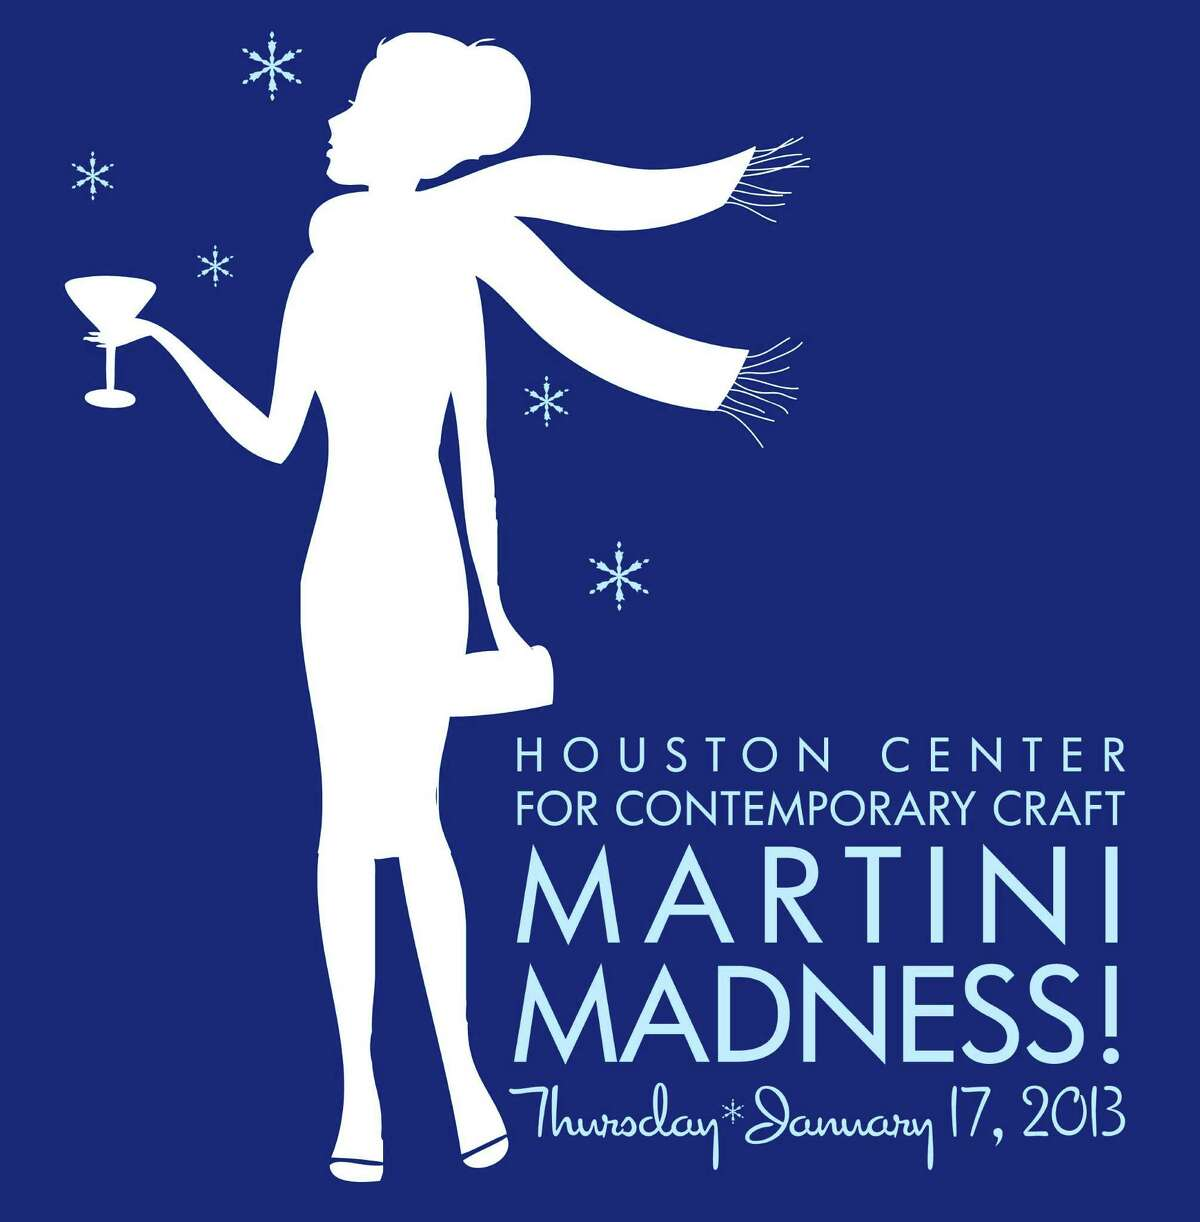 """Houston Center for Contemporary Craft's annual """"Martini Madness"""" party is January 17."""